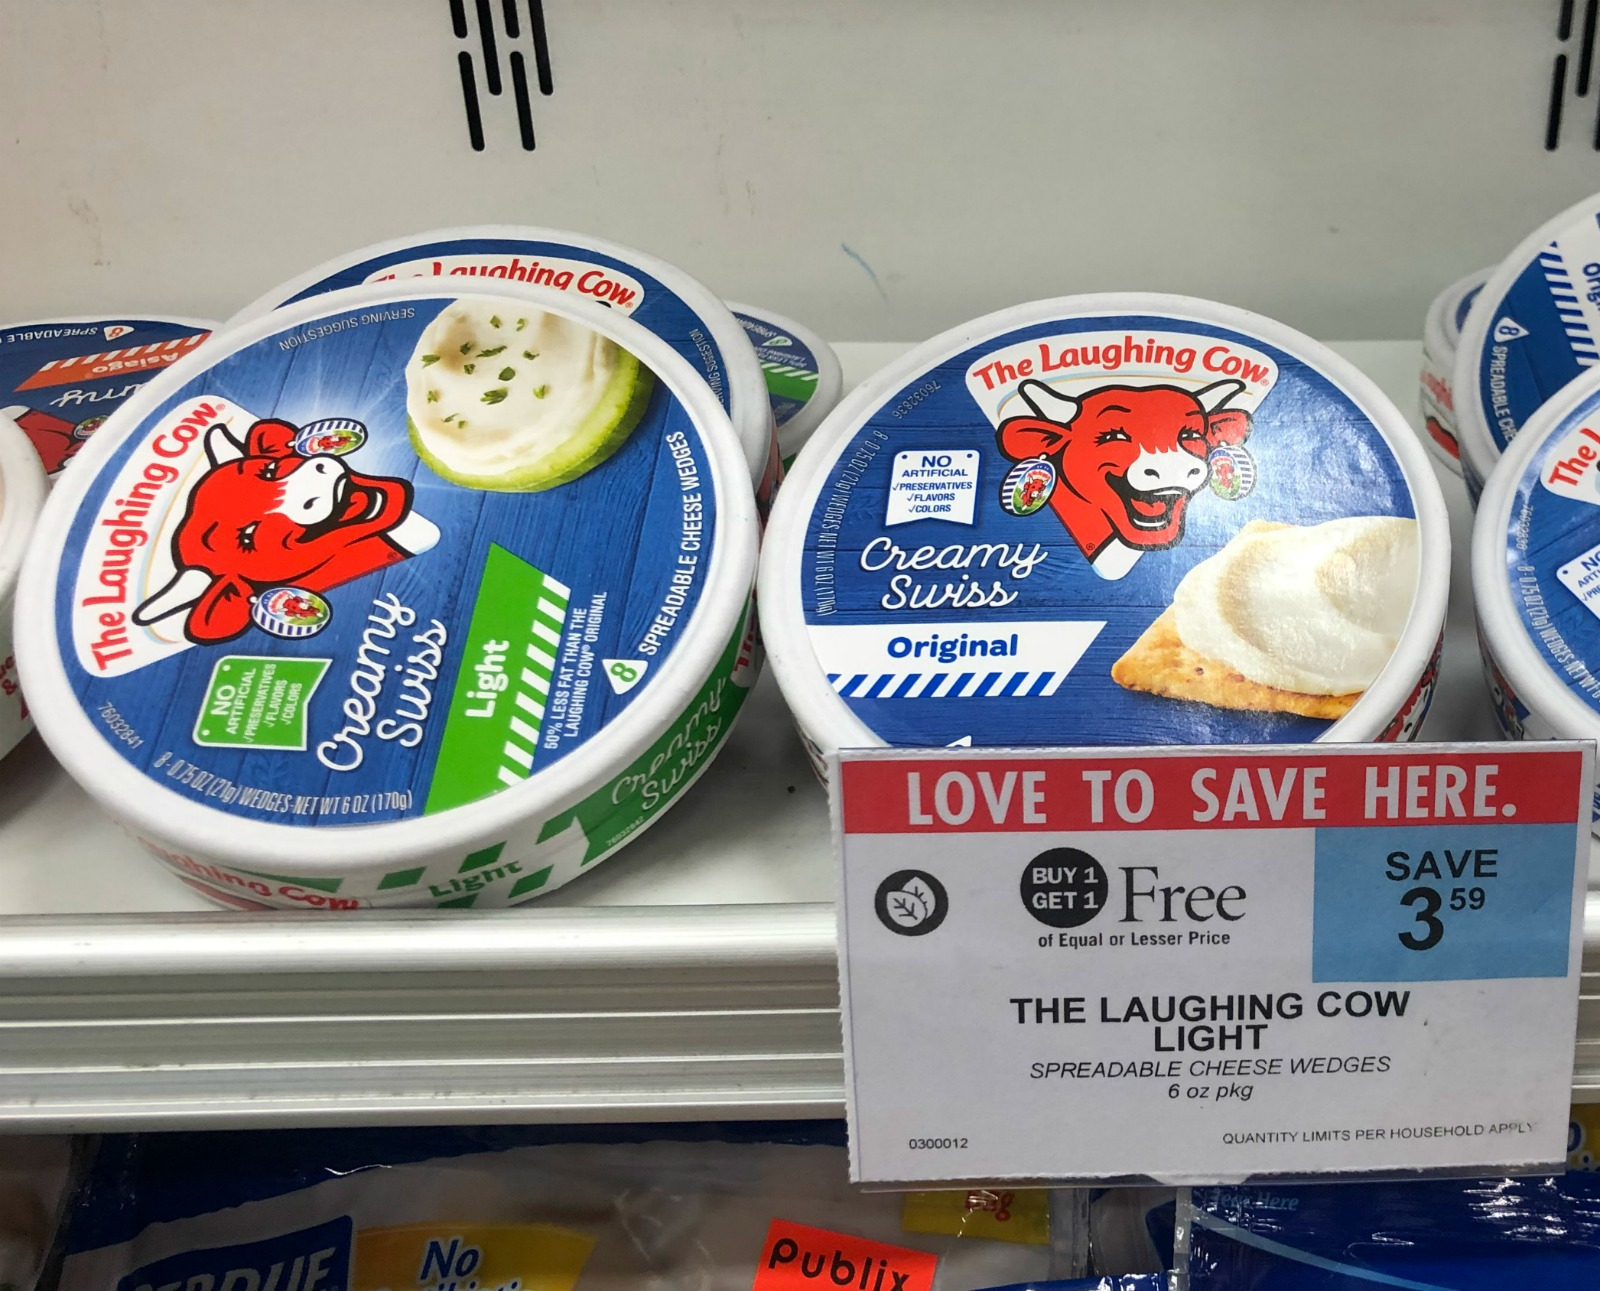 Grab The Laughing Cow Cheese At A Great Price During The Rare BOGO Sale At Publix on I Heart Publix